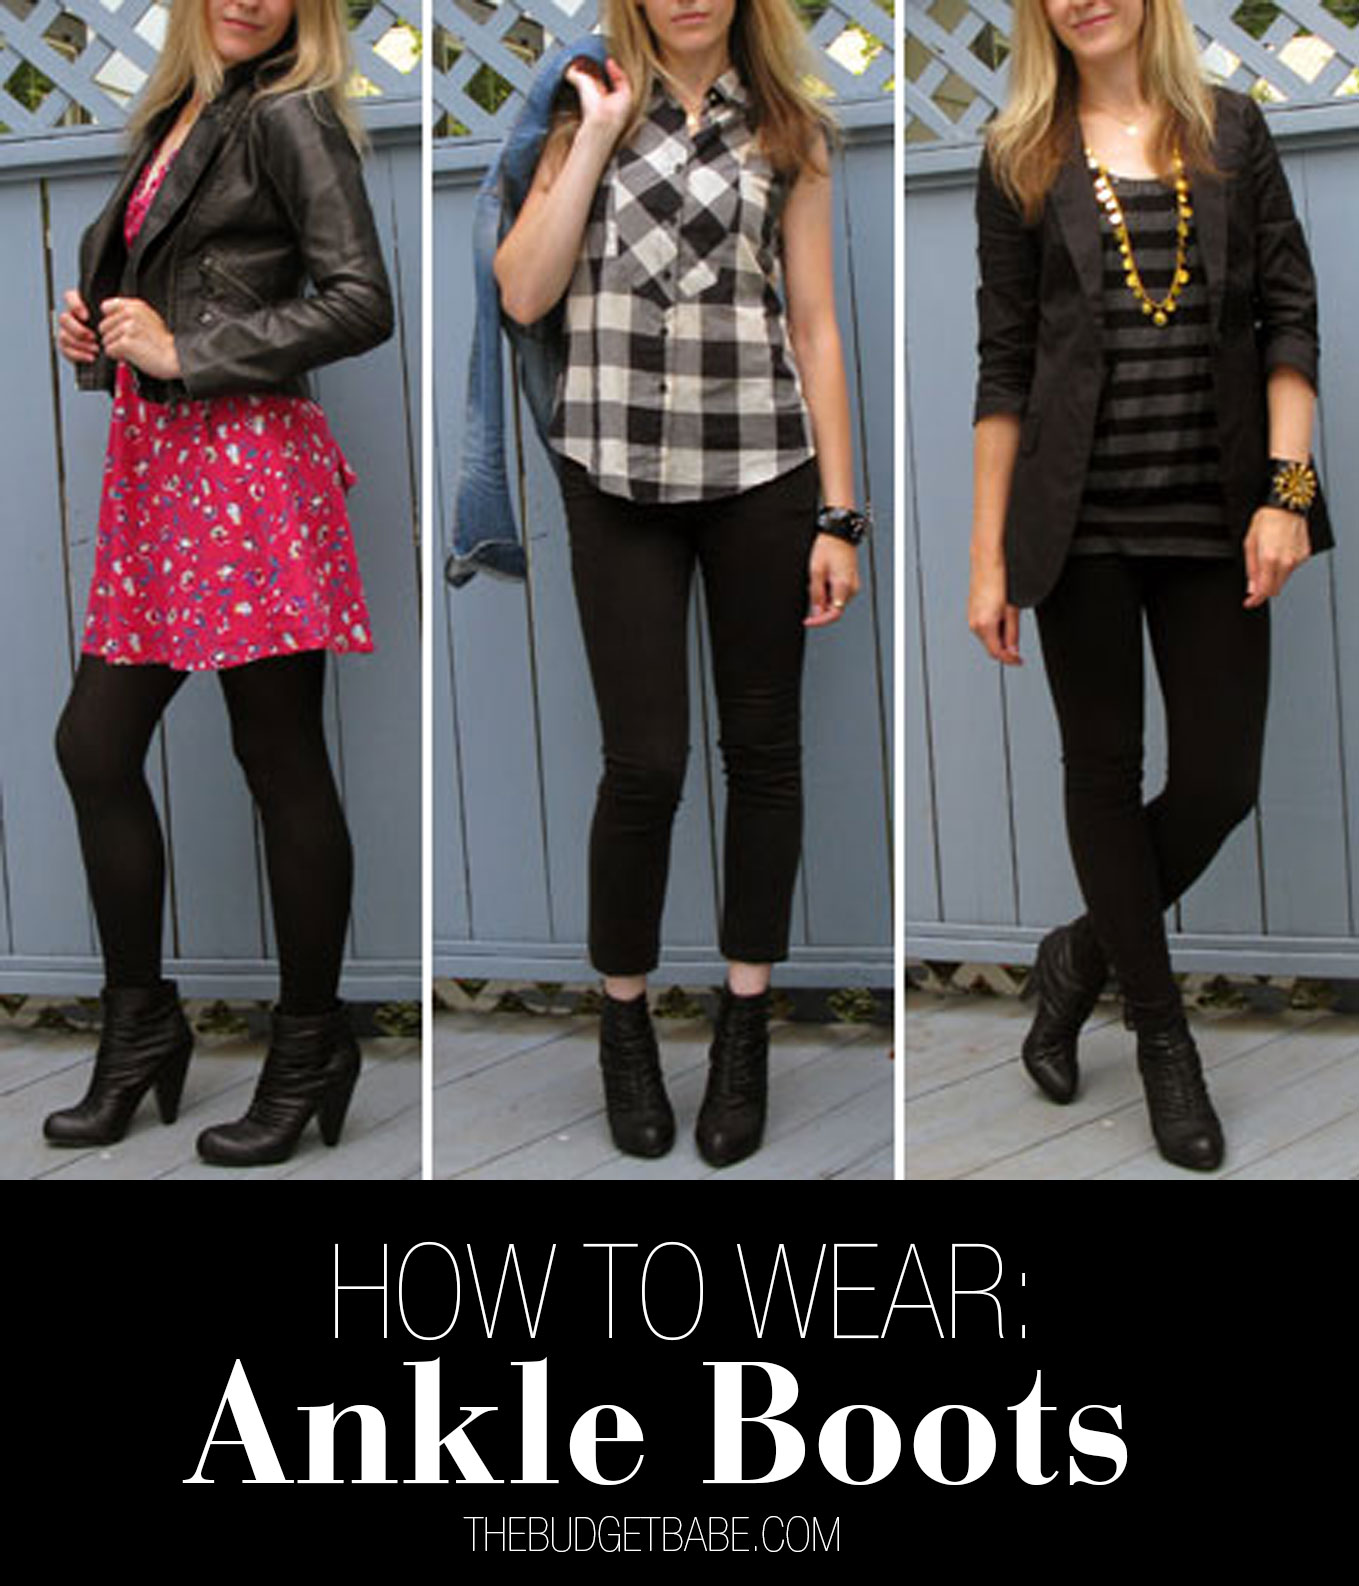 Not sure how to wear ankle boots? Read these tips for all body types.